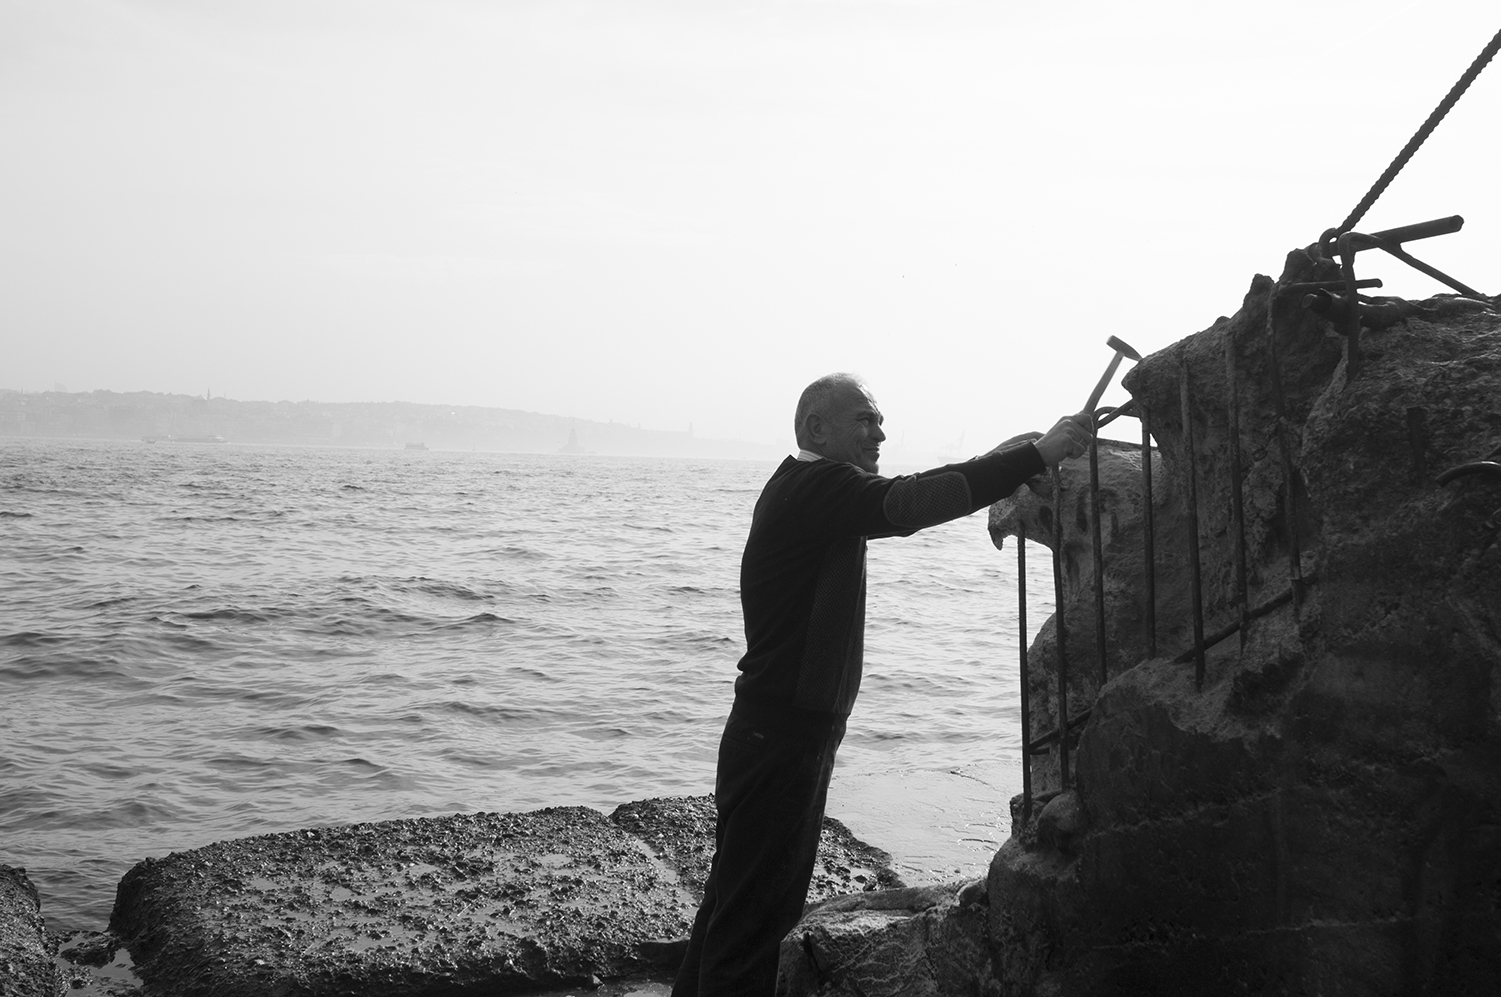 Artist sculpting an eagle in a reinforced concrete block on the  Bosphorus strait side.